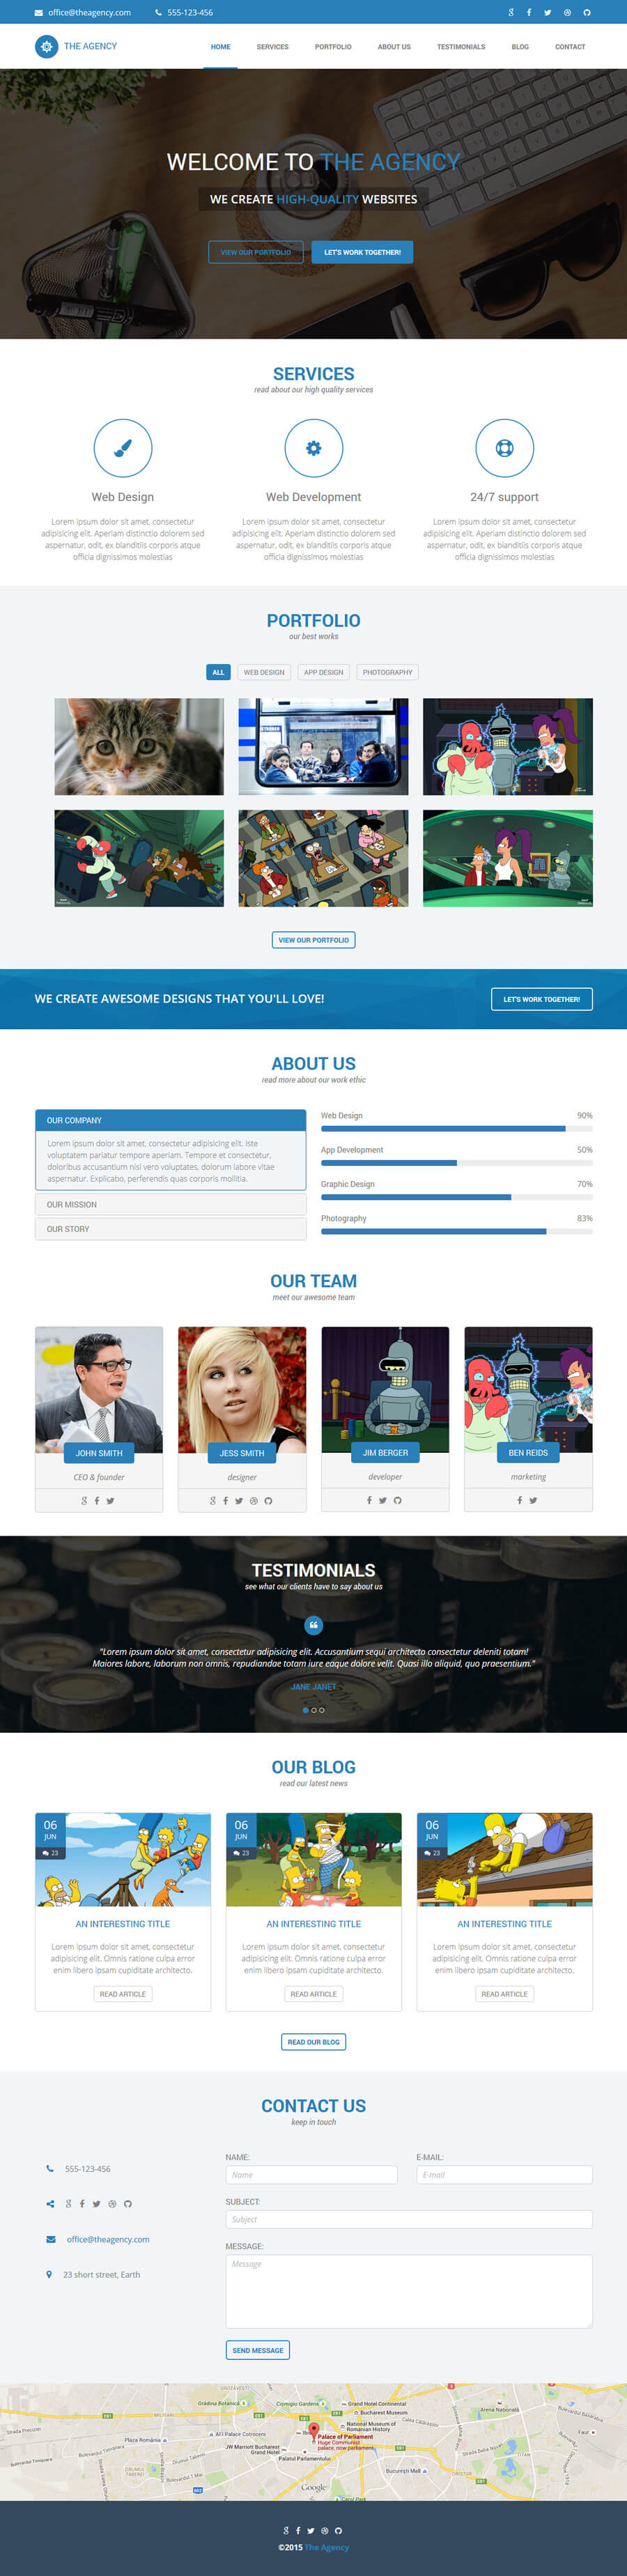 The Agency HTML Final